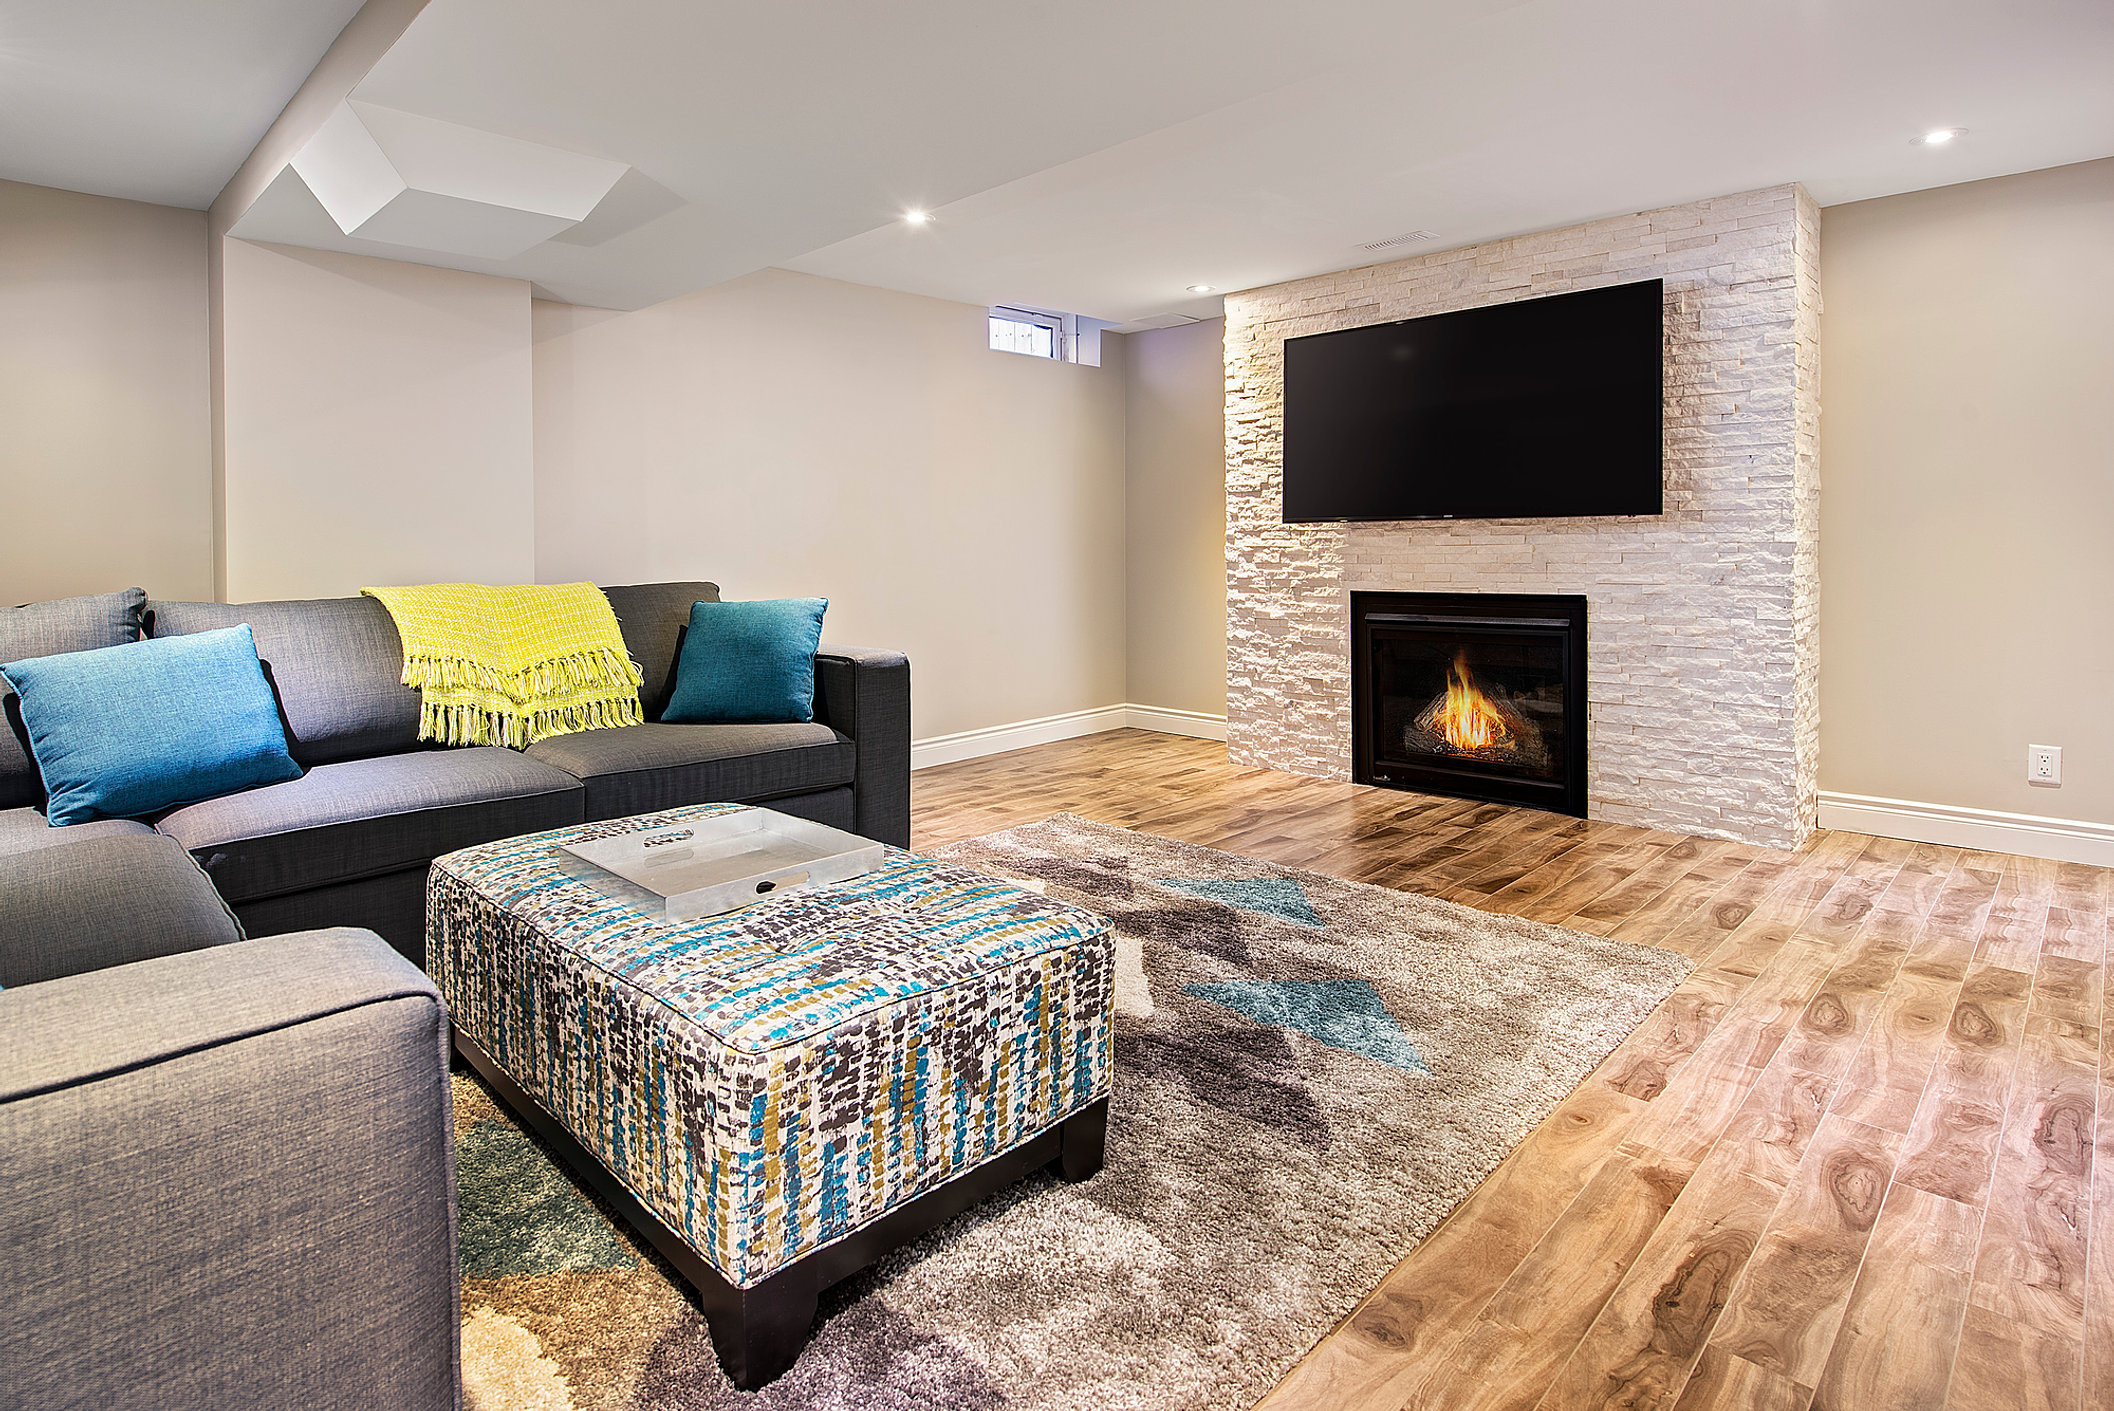 Basement in torontorenovation and finishing basement in toronto - Basement Renovation Stoney Creek